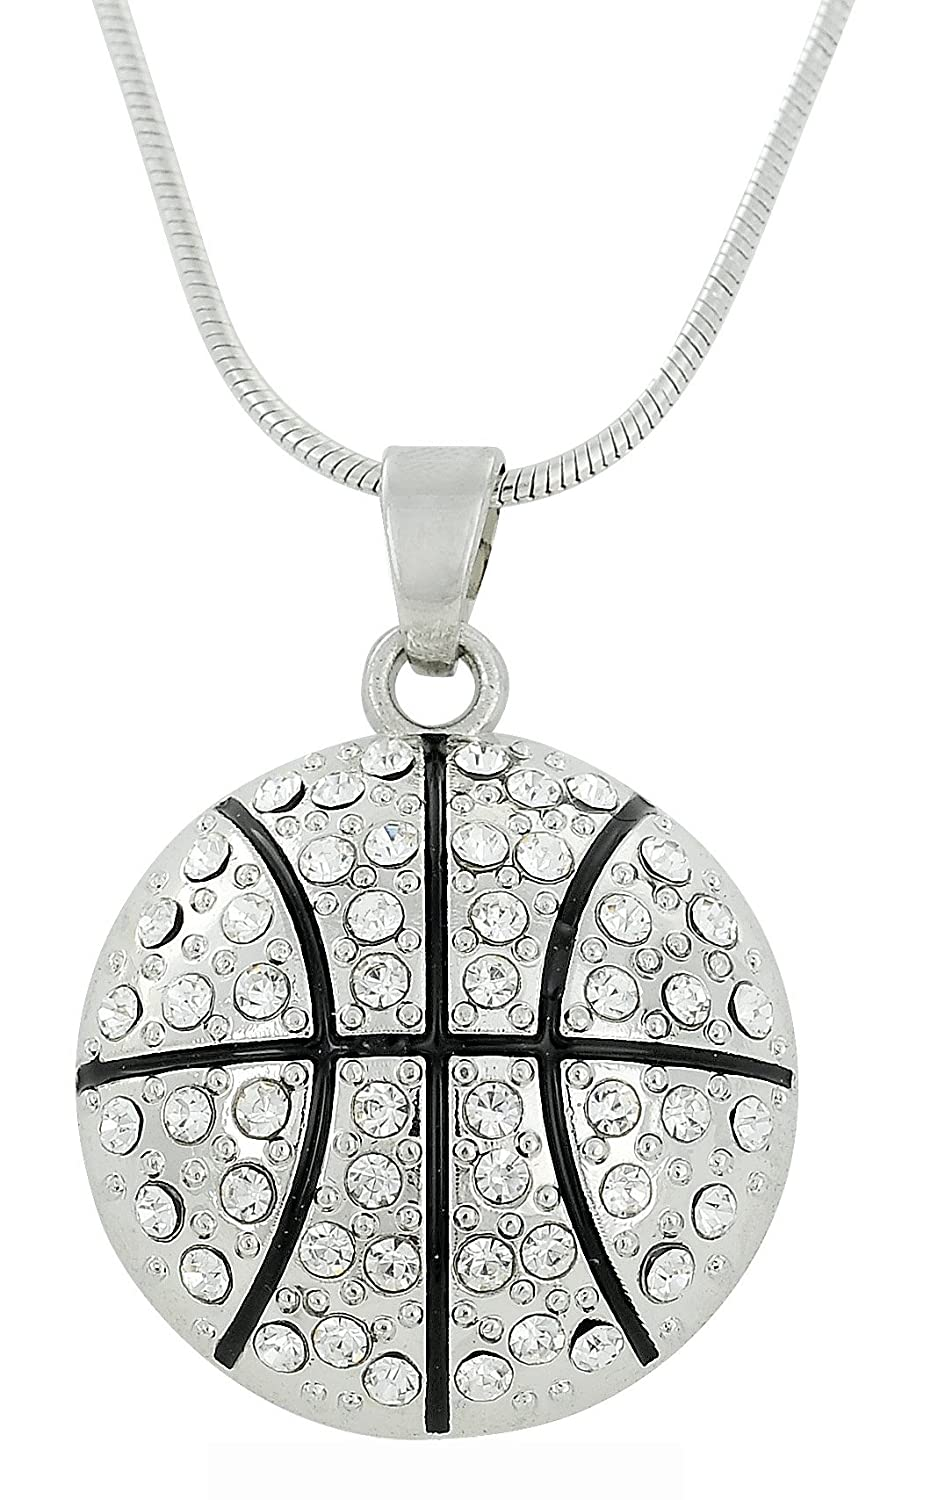 BASKETBALL Charm Crystal Anhänger Halskette Sports Fan Schmuck BiChuang